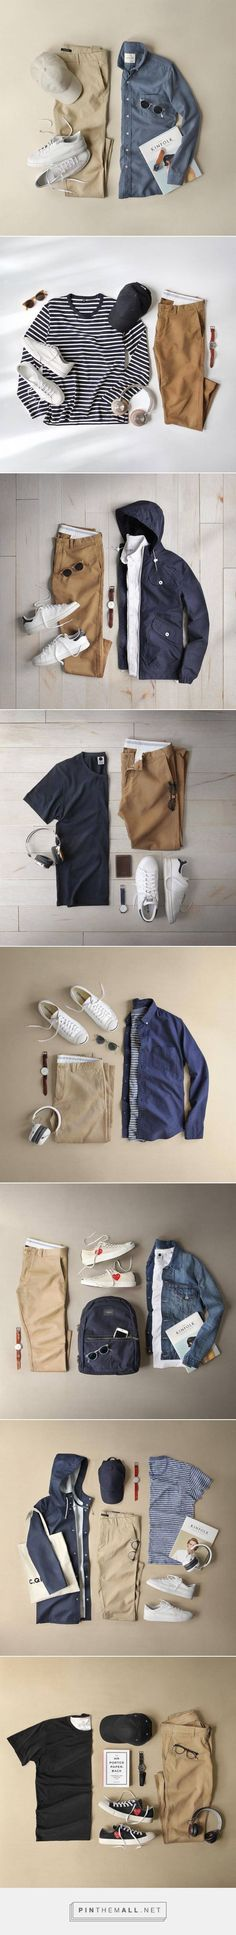 How to wear kahki chinos? see how you can khaki chinos like a fashion blogger. #mens #fashion @blogger